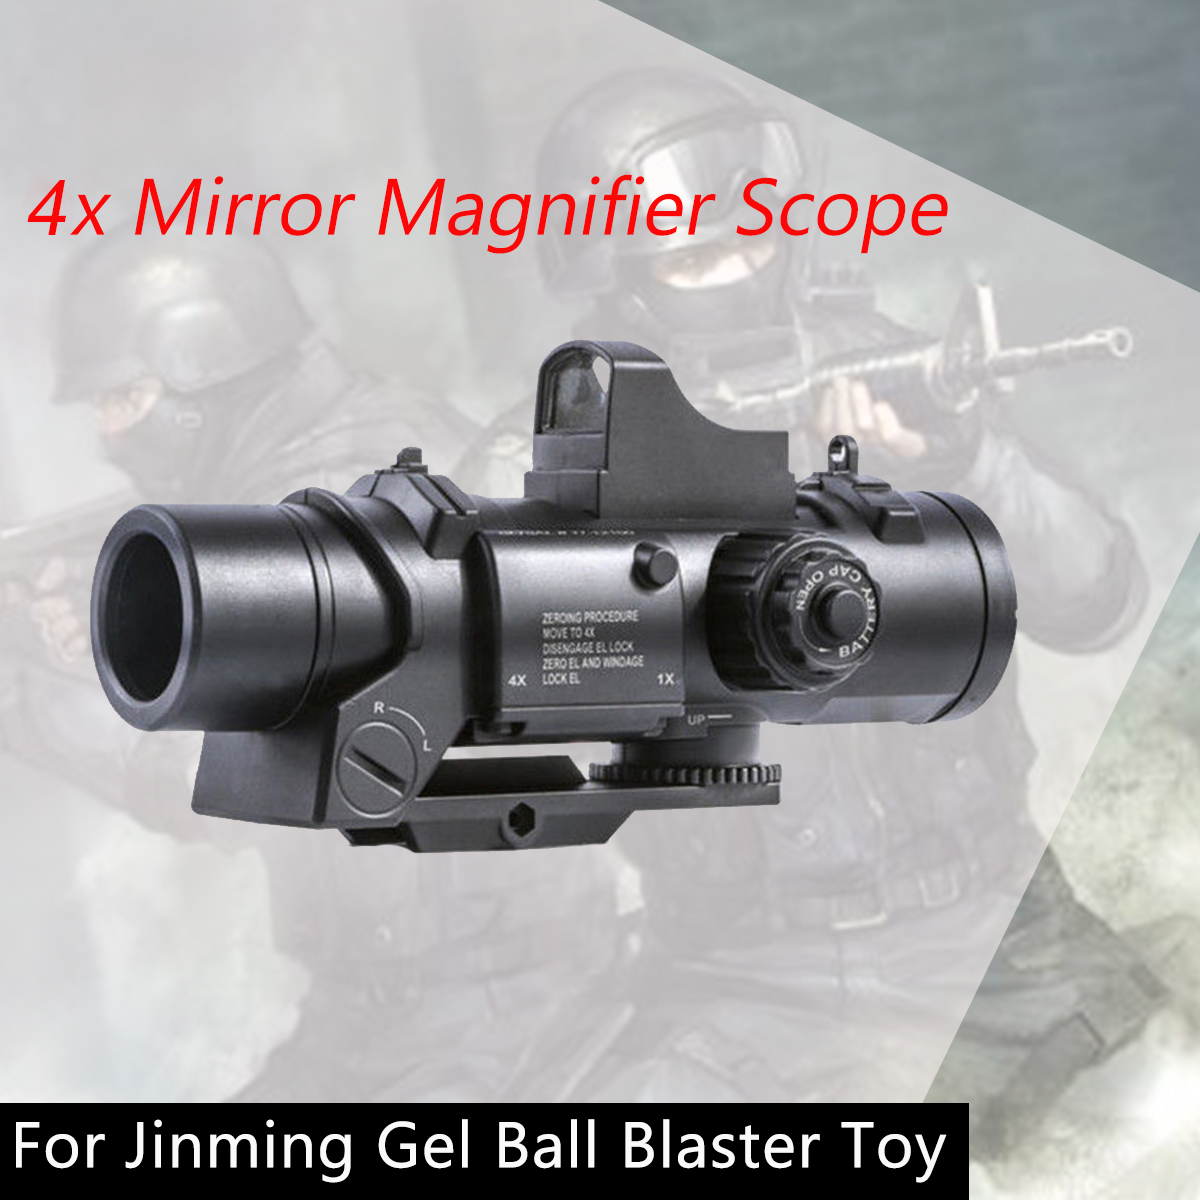 4X Mirror Magnifier Scope With Red Dot Sights For Jinming Gel Ball Water Toy 4X Sight For Gel Ball Toy